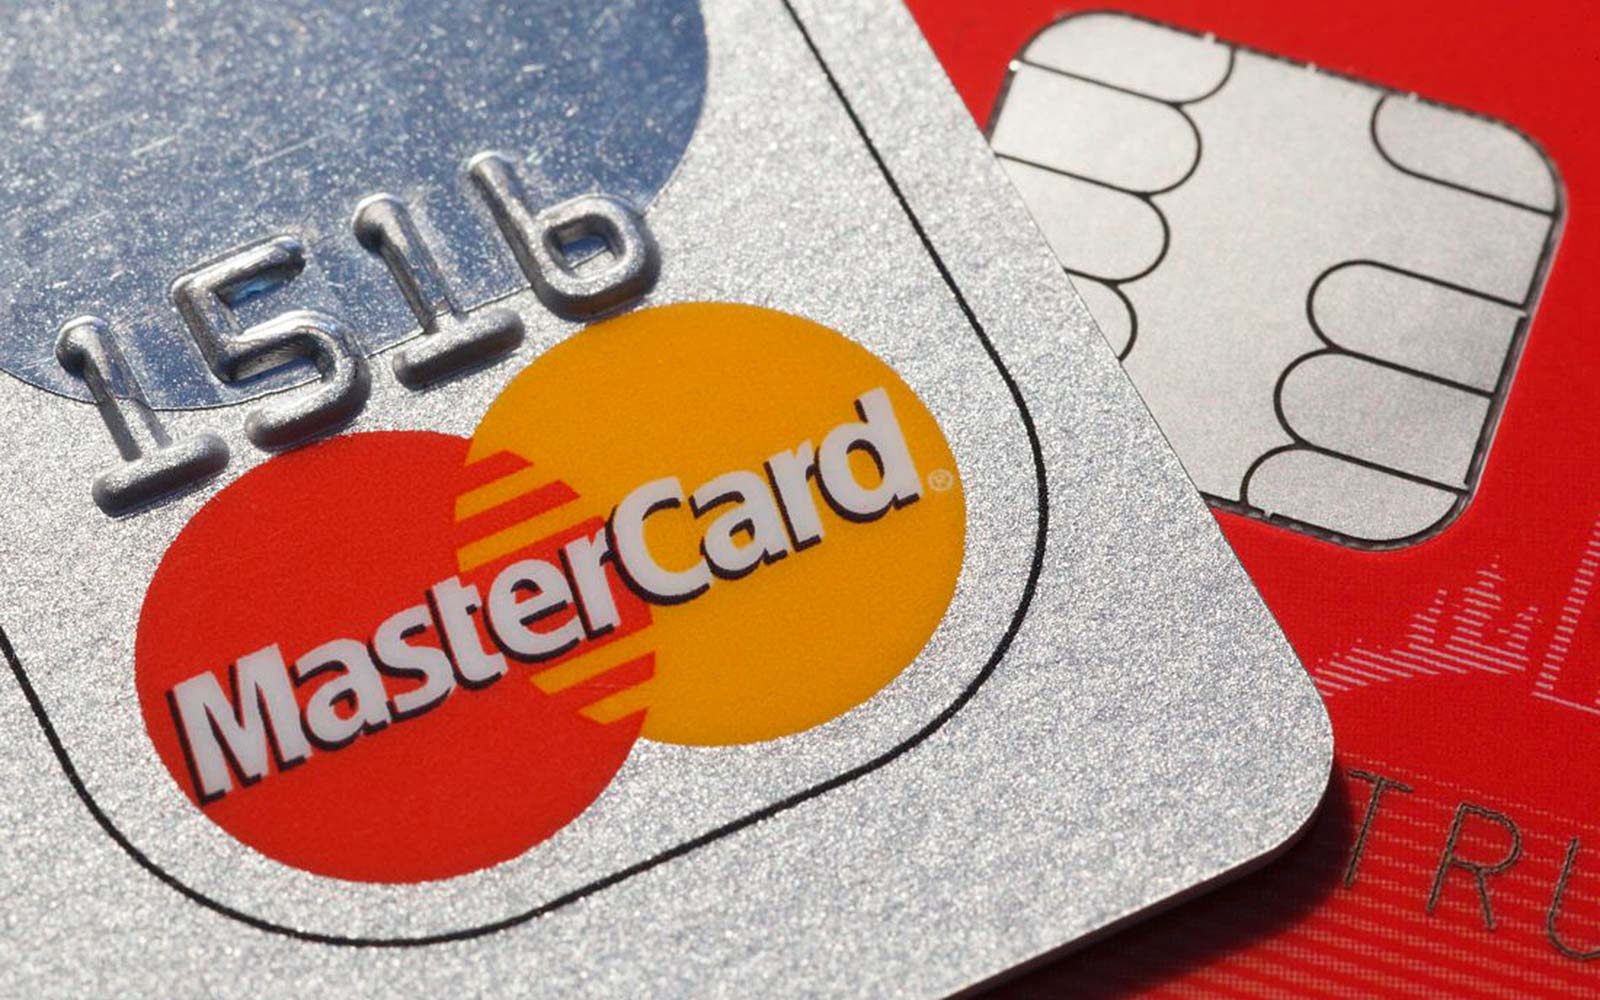 The New Mastercard Might Have a Built-in Fingerprint Scanner